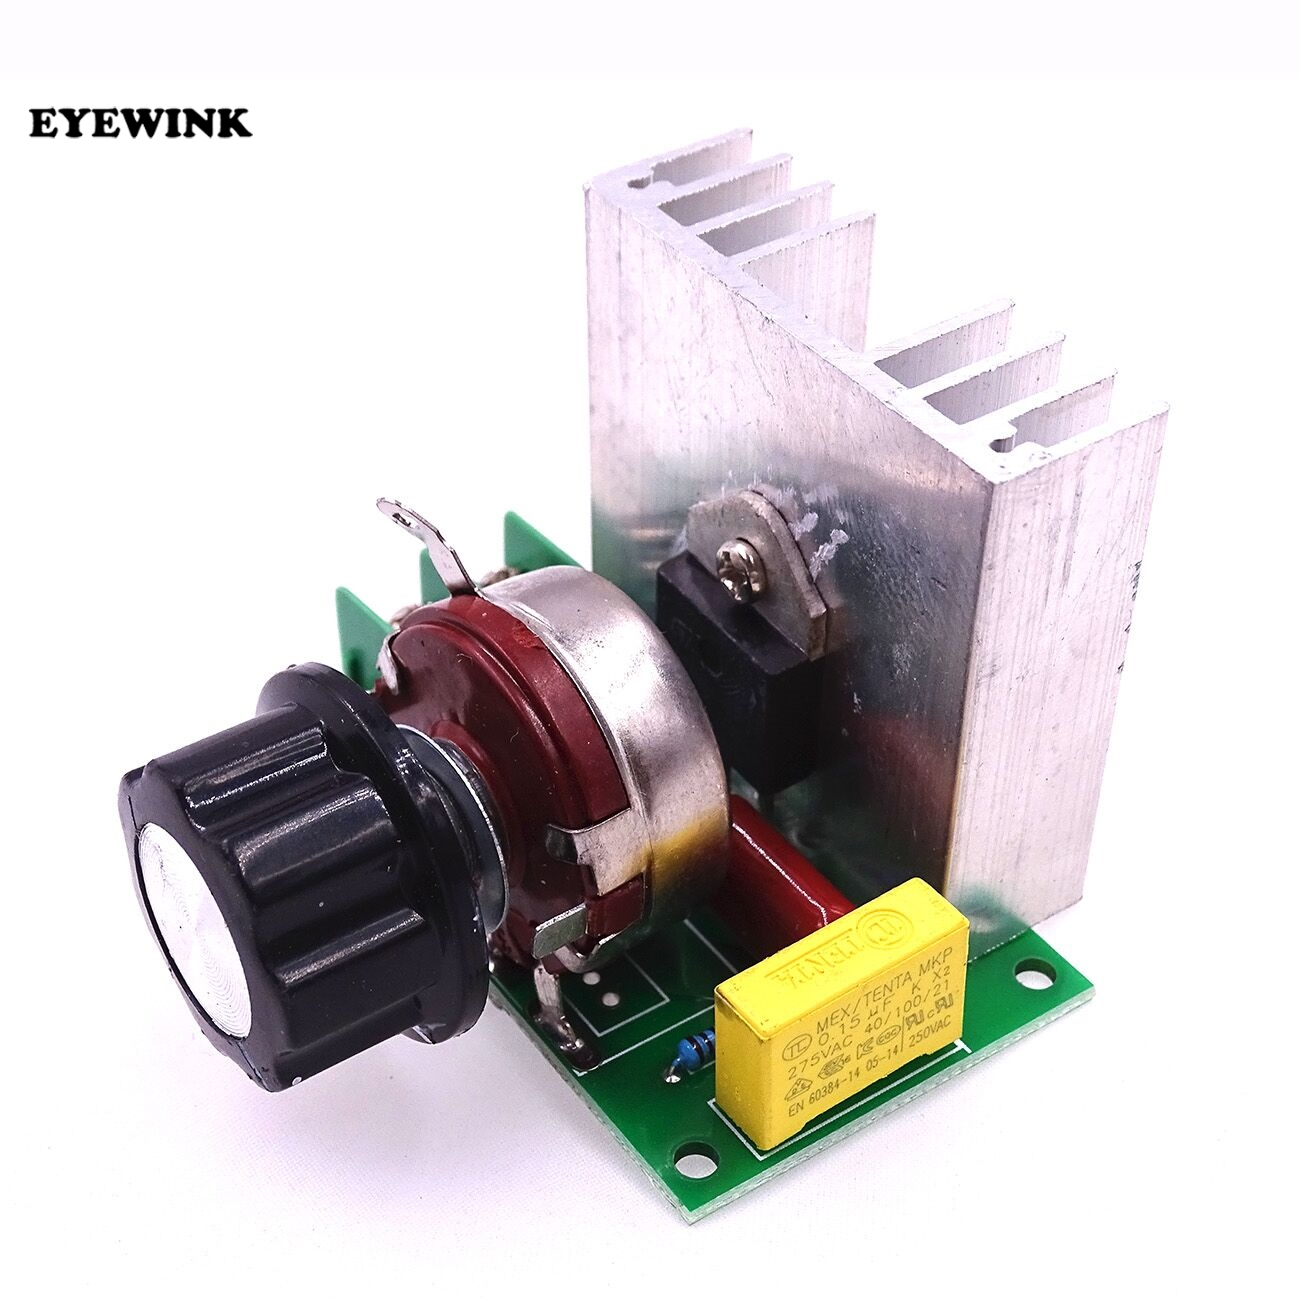 1pcs New AC 220V 3800W imported SCR thyristor power electronic dimmer,voltage regulator,speed and temperature silicon controlled(China)